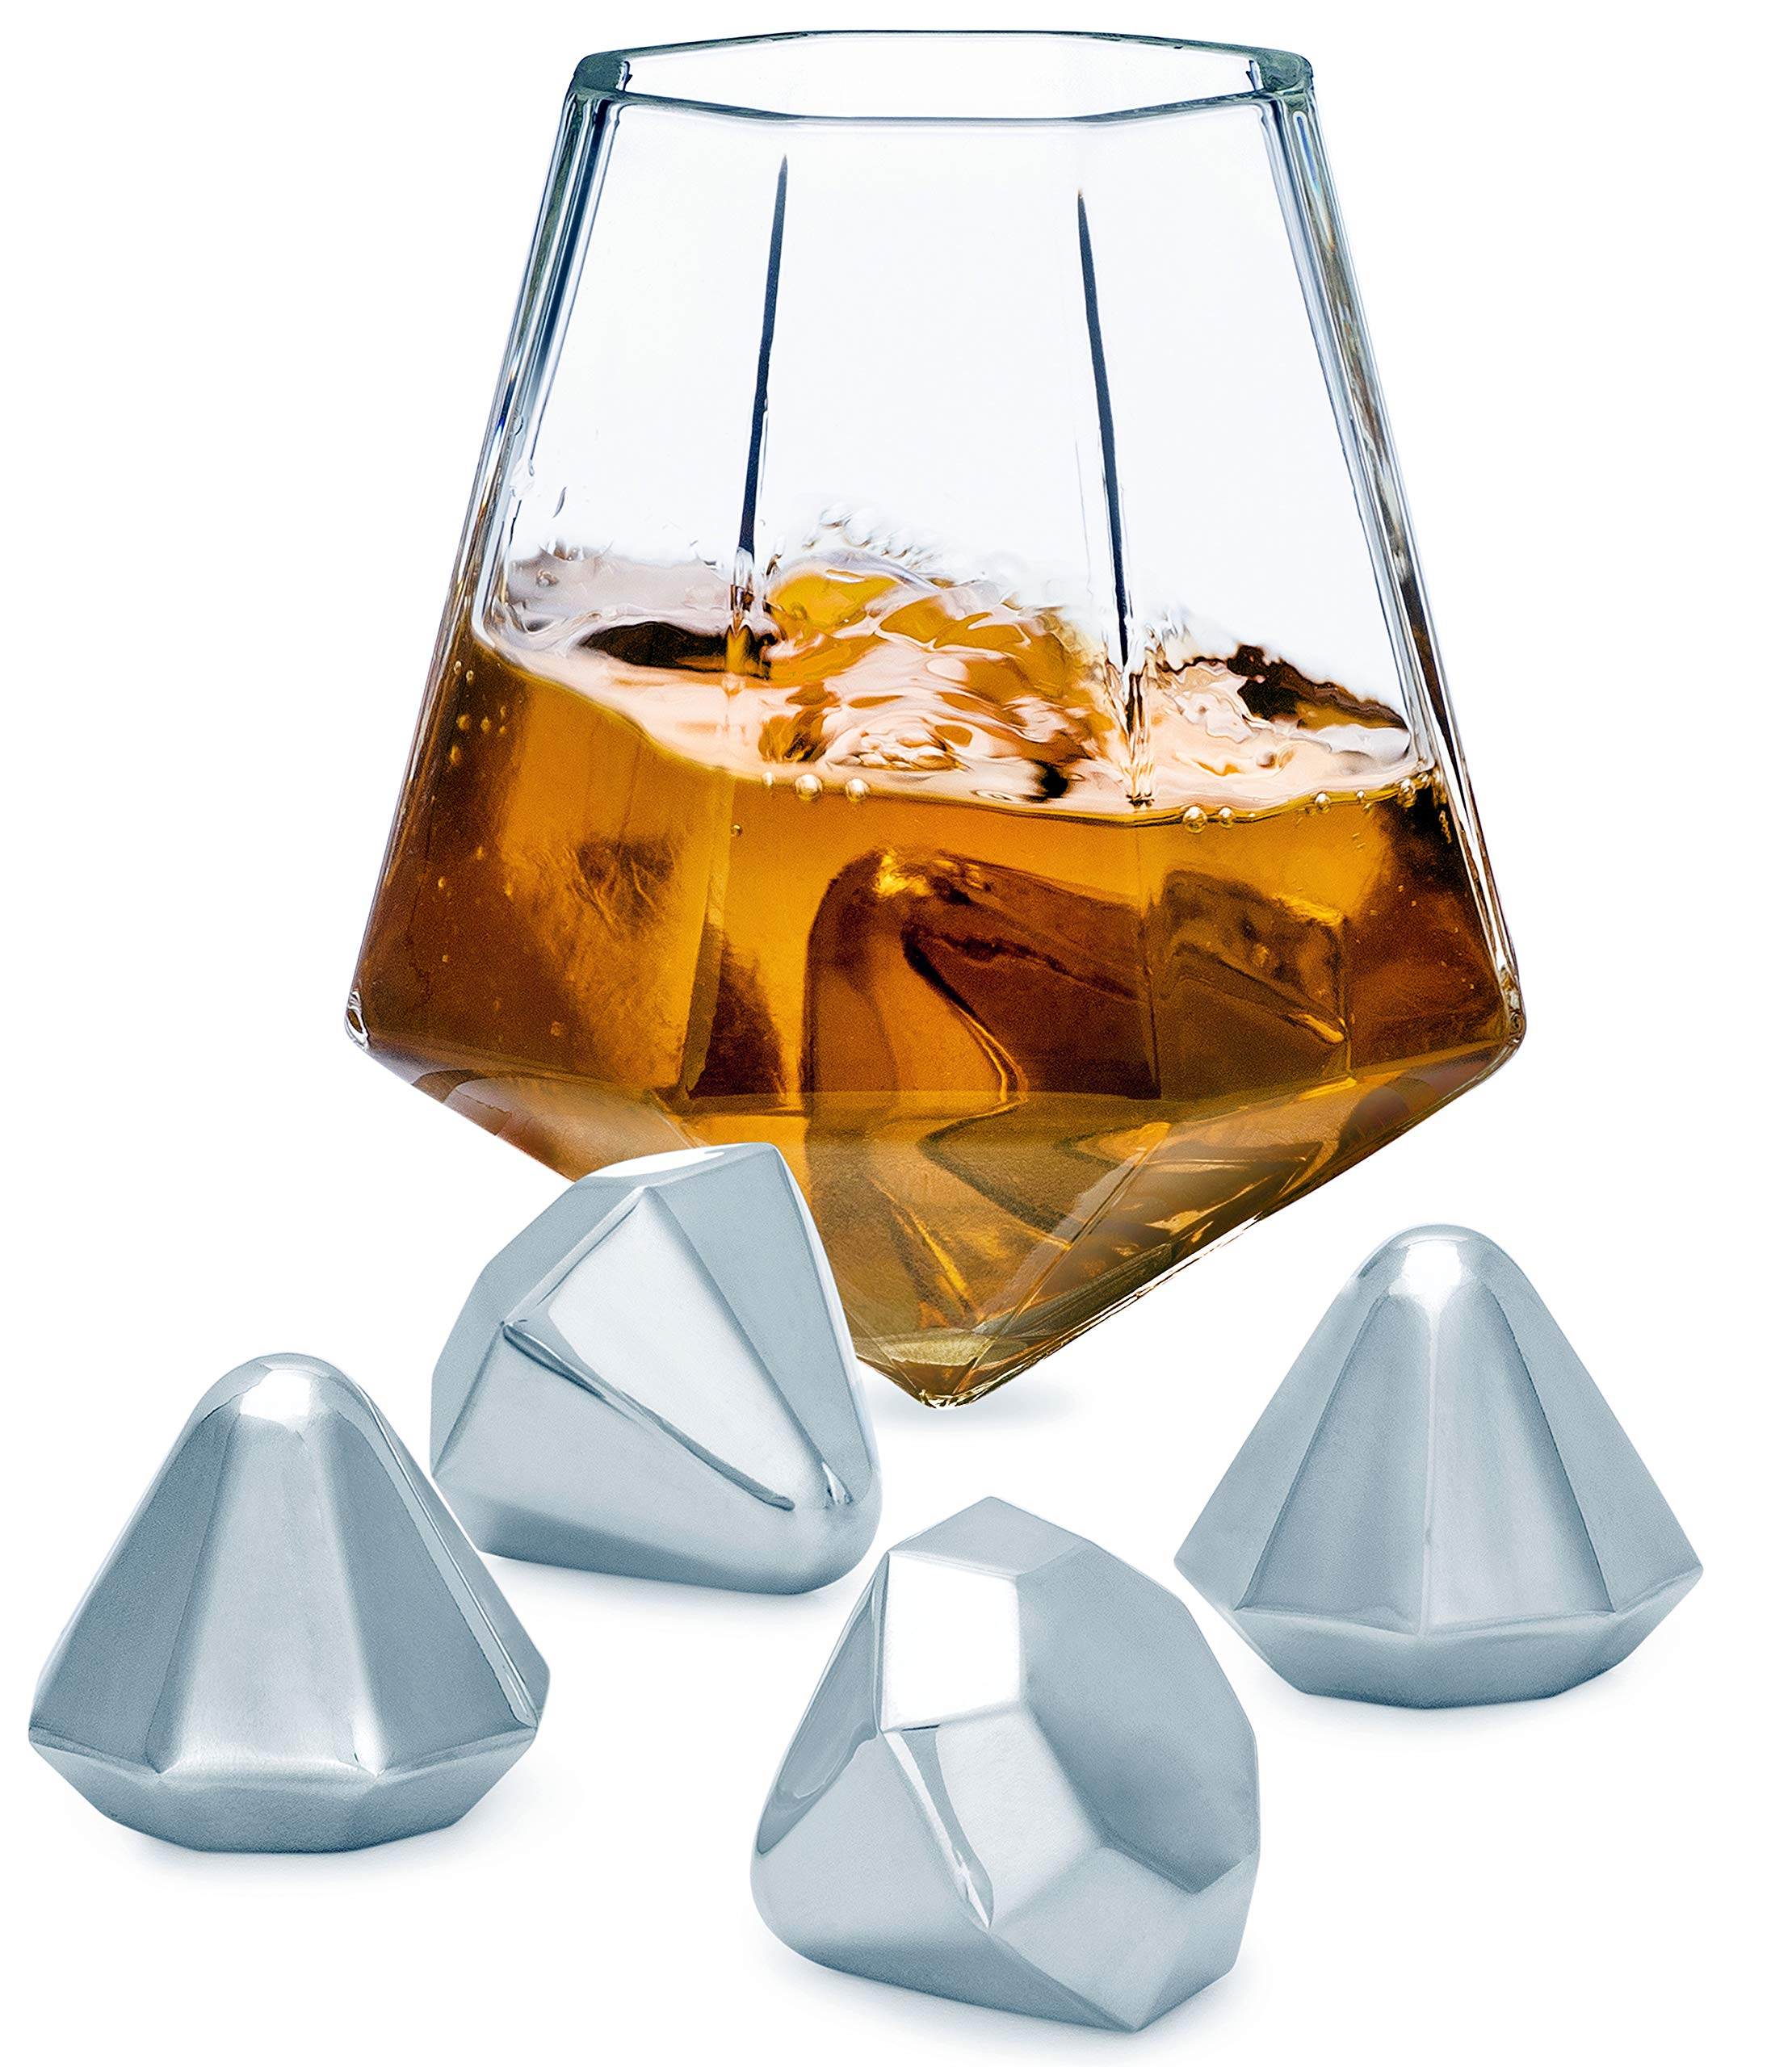 Diamond Whiskey Stones, Reusable Stainless Steel with Velvet Carrying Pouch - Set of 4